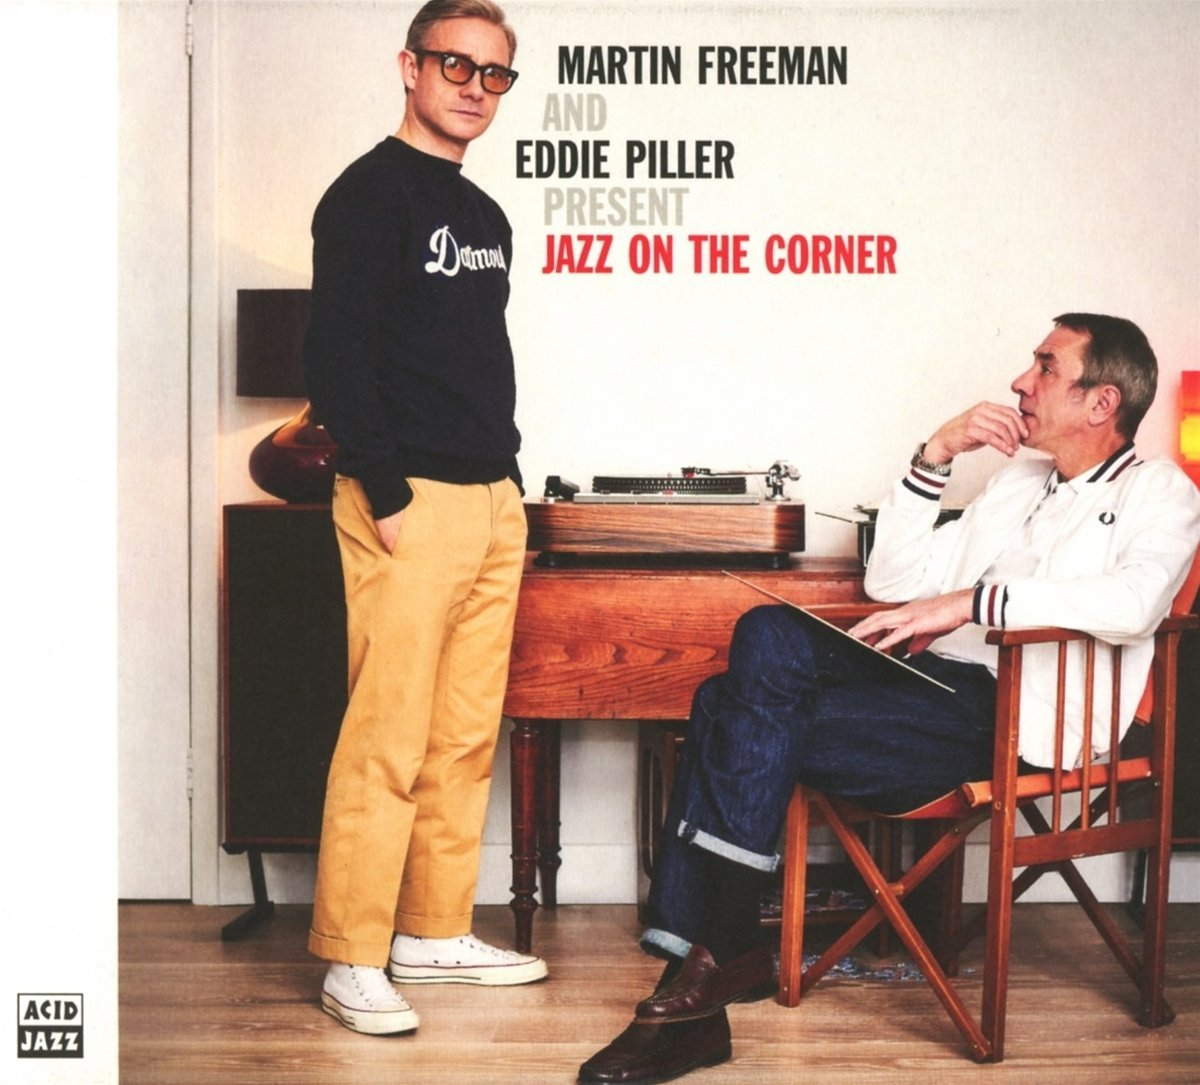 - Martin Freeman and Eddie Piller Present Jazz On The Corner [LP]